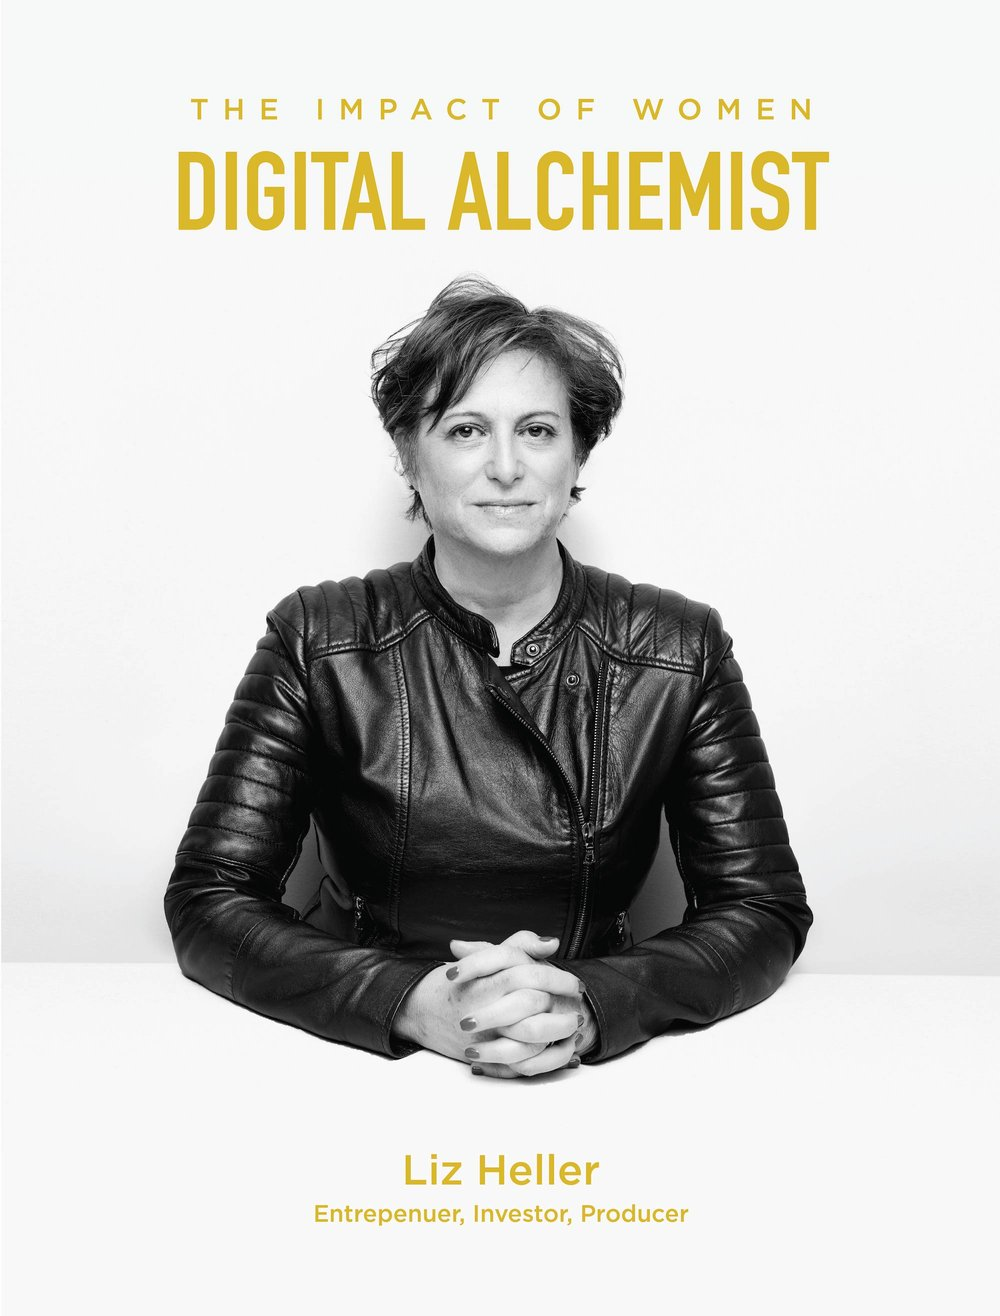 Liz Heller is a Digital alchemist